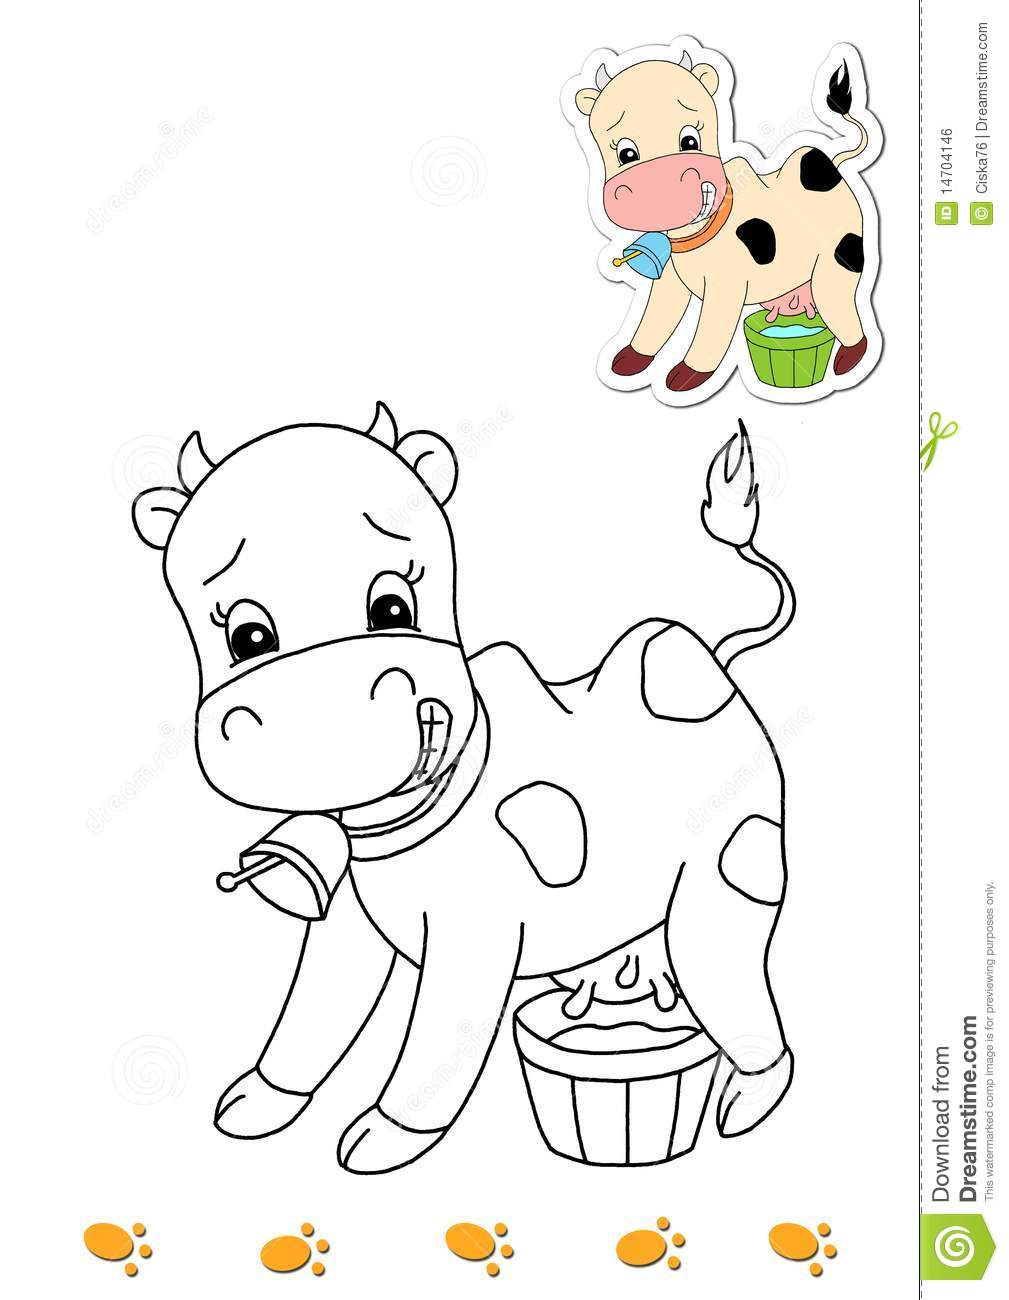 coloring book of animals 16 cow royalty free stock image image